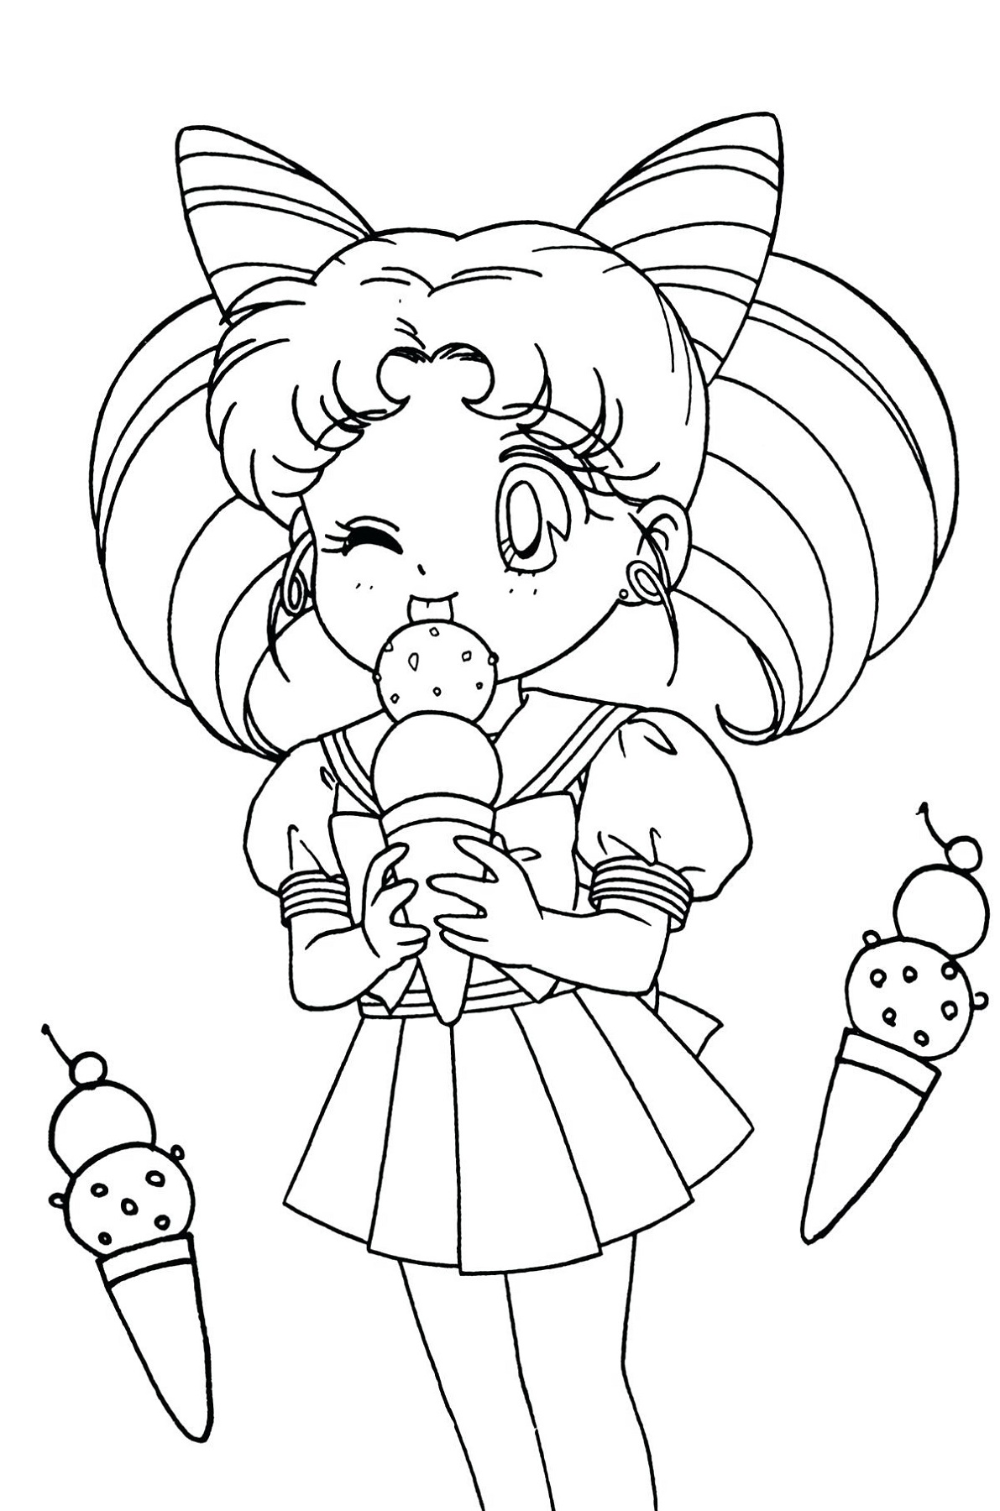 animal girl coloring pages chibi girl coloring pages k5 worksheets in 2020 pages animal coloring girl